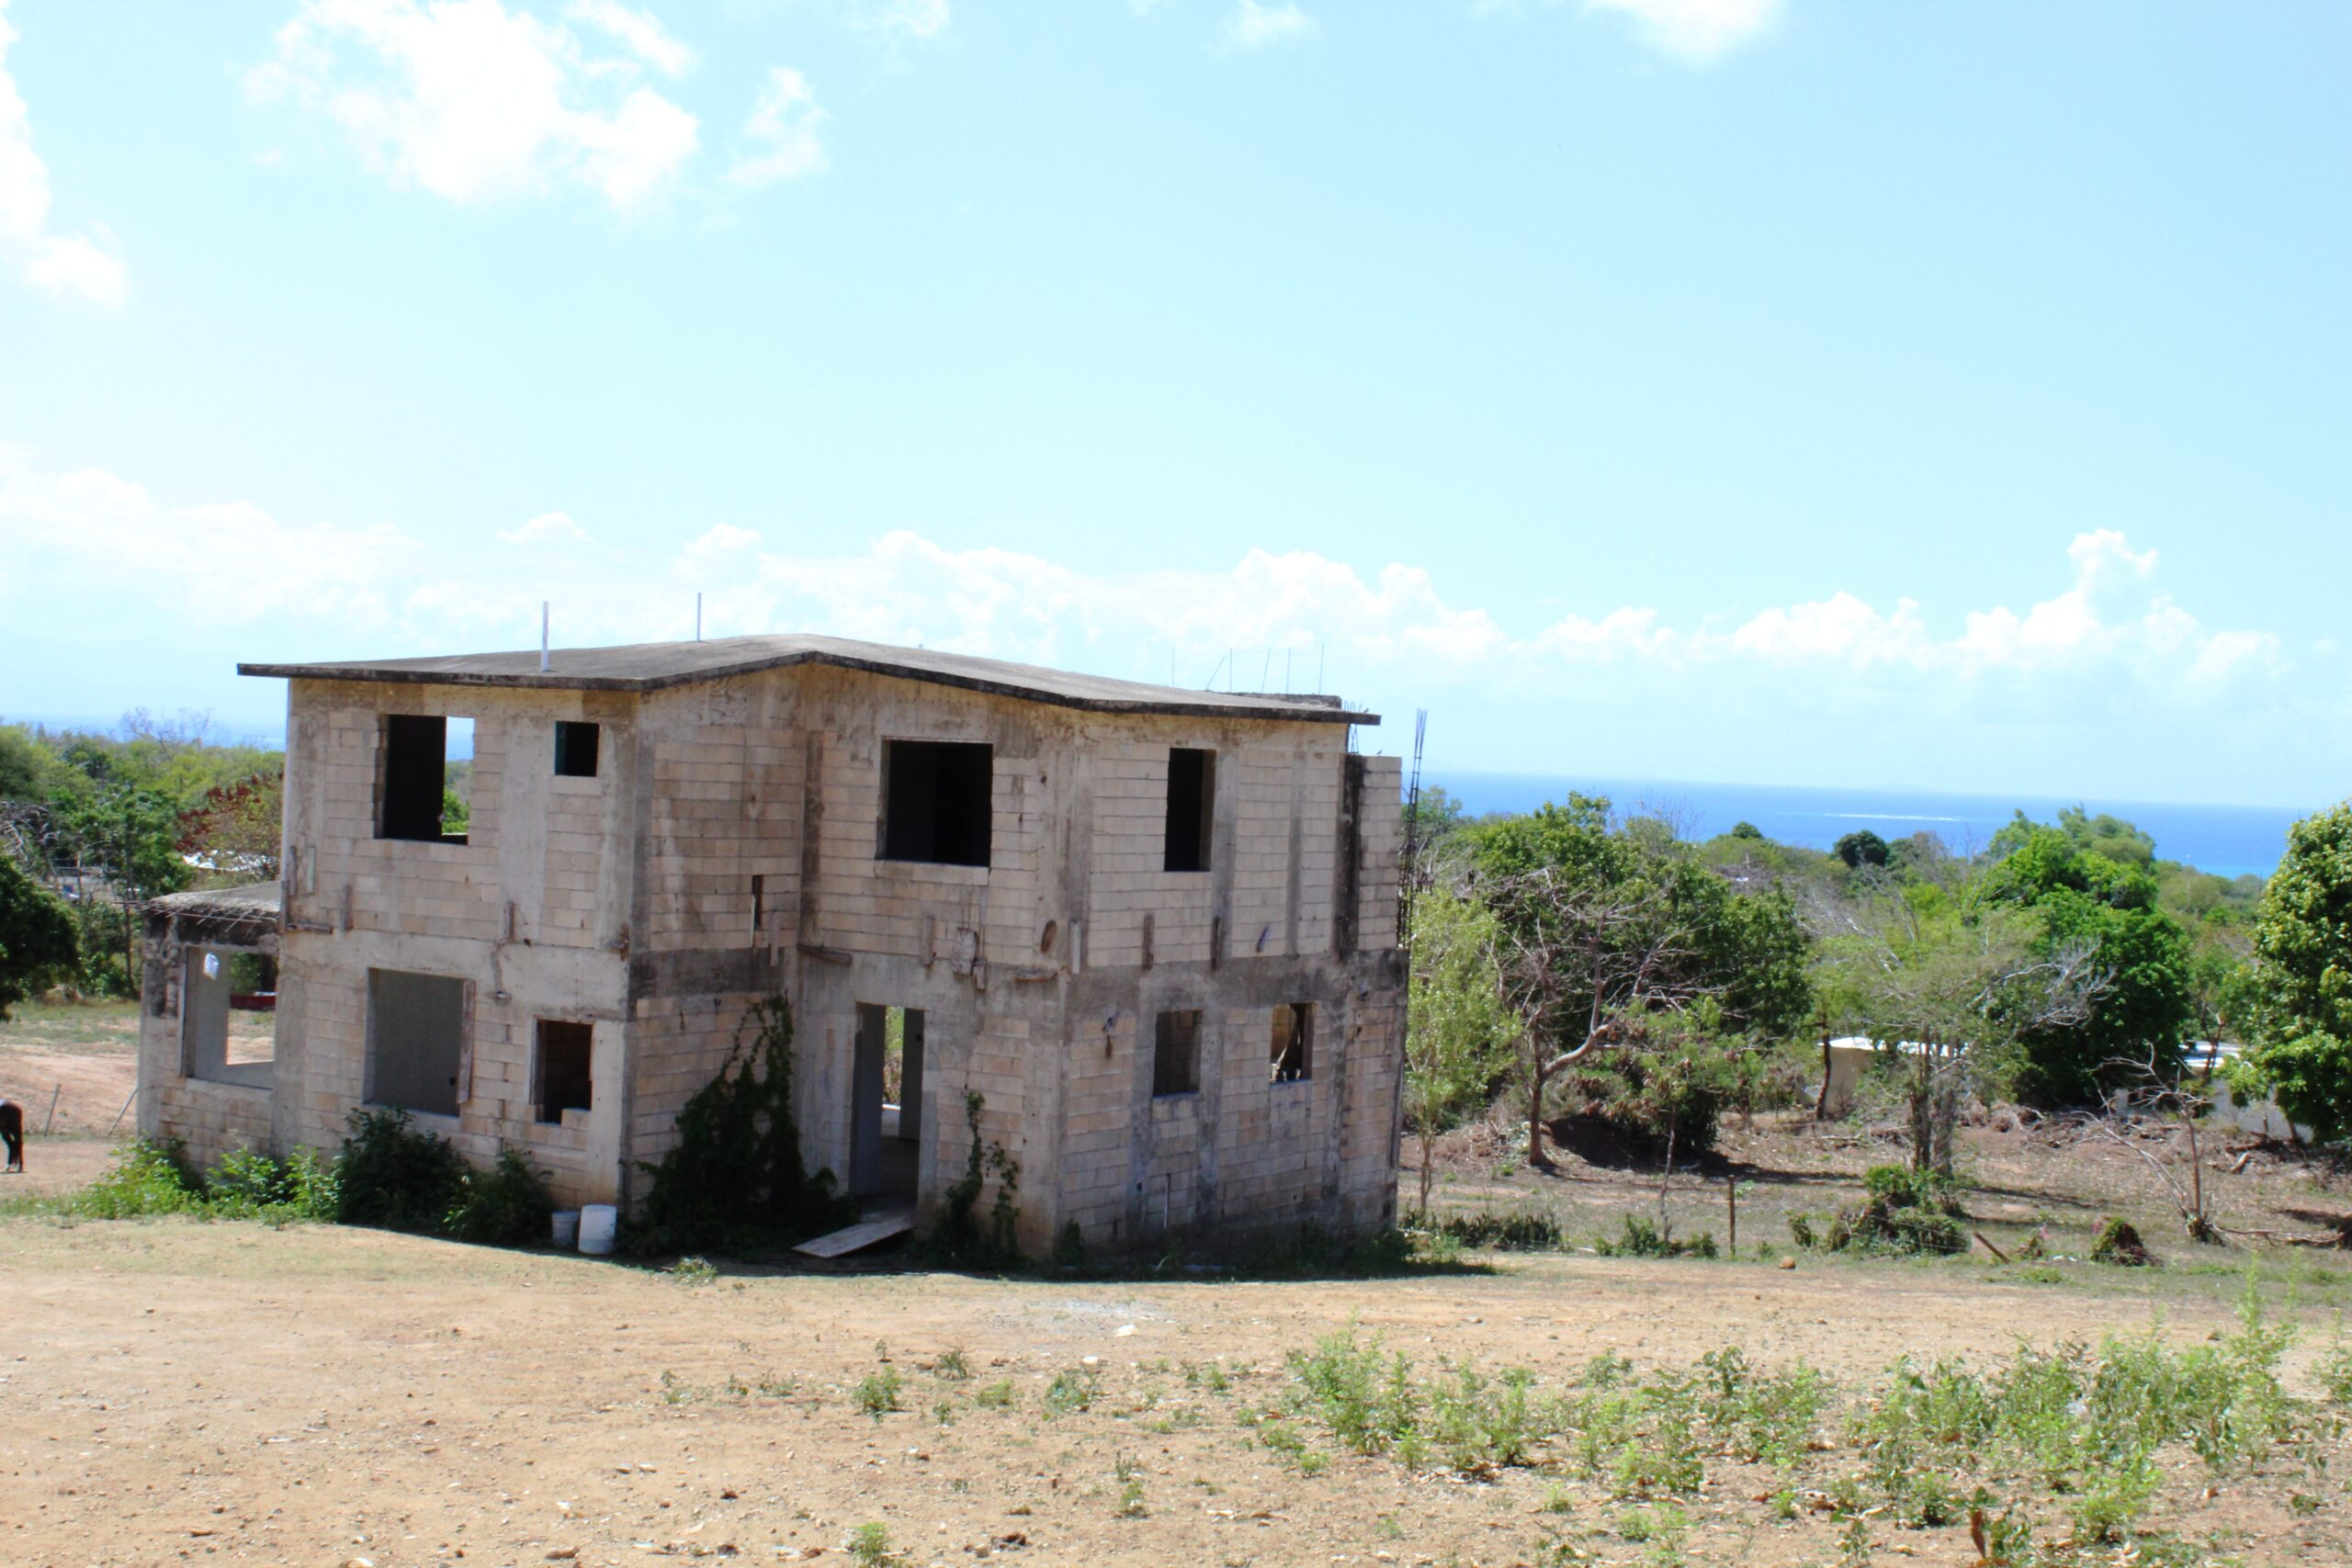 Home in La PRAA to be finished